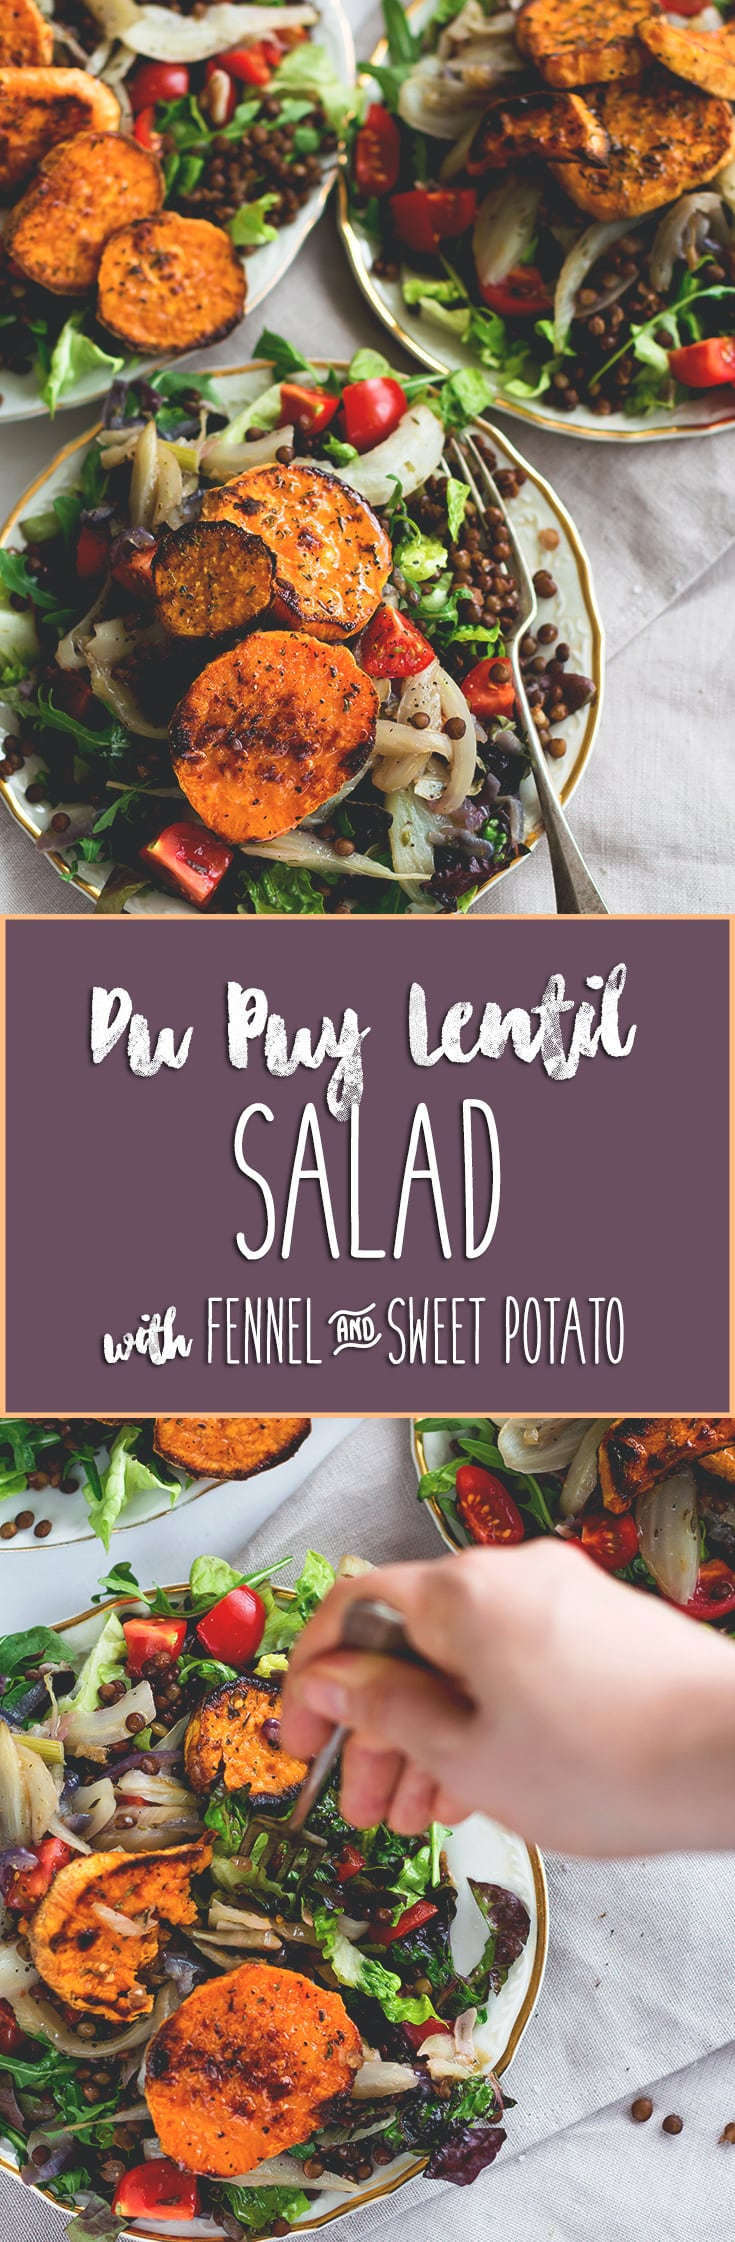 Du Puy Lentil Salad with Fennel and Sweet Potatoes - we LOVE this recipe! It's filling, flavorful, vegan, and really easy to make. Du Puy lentils have a nutty flavor and combined with the sweet potatoes and fennel it's absolutely devine! | thehealthfulideas.com